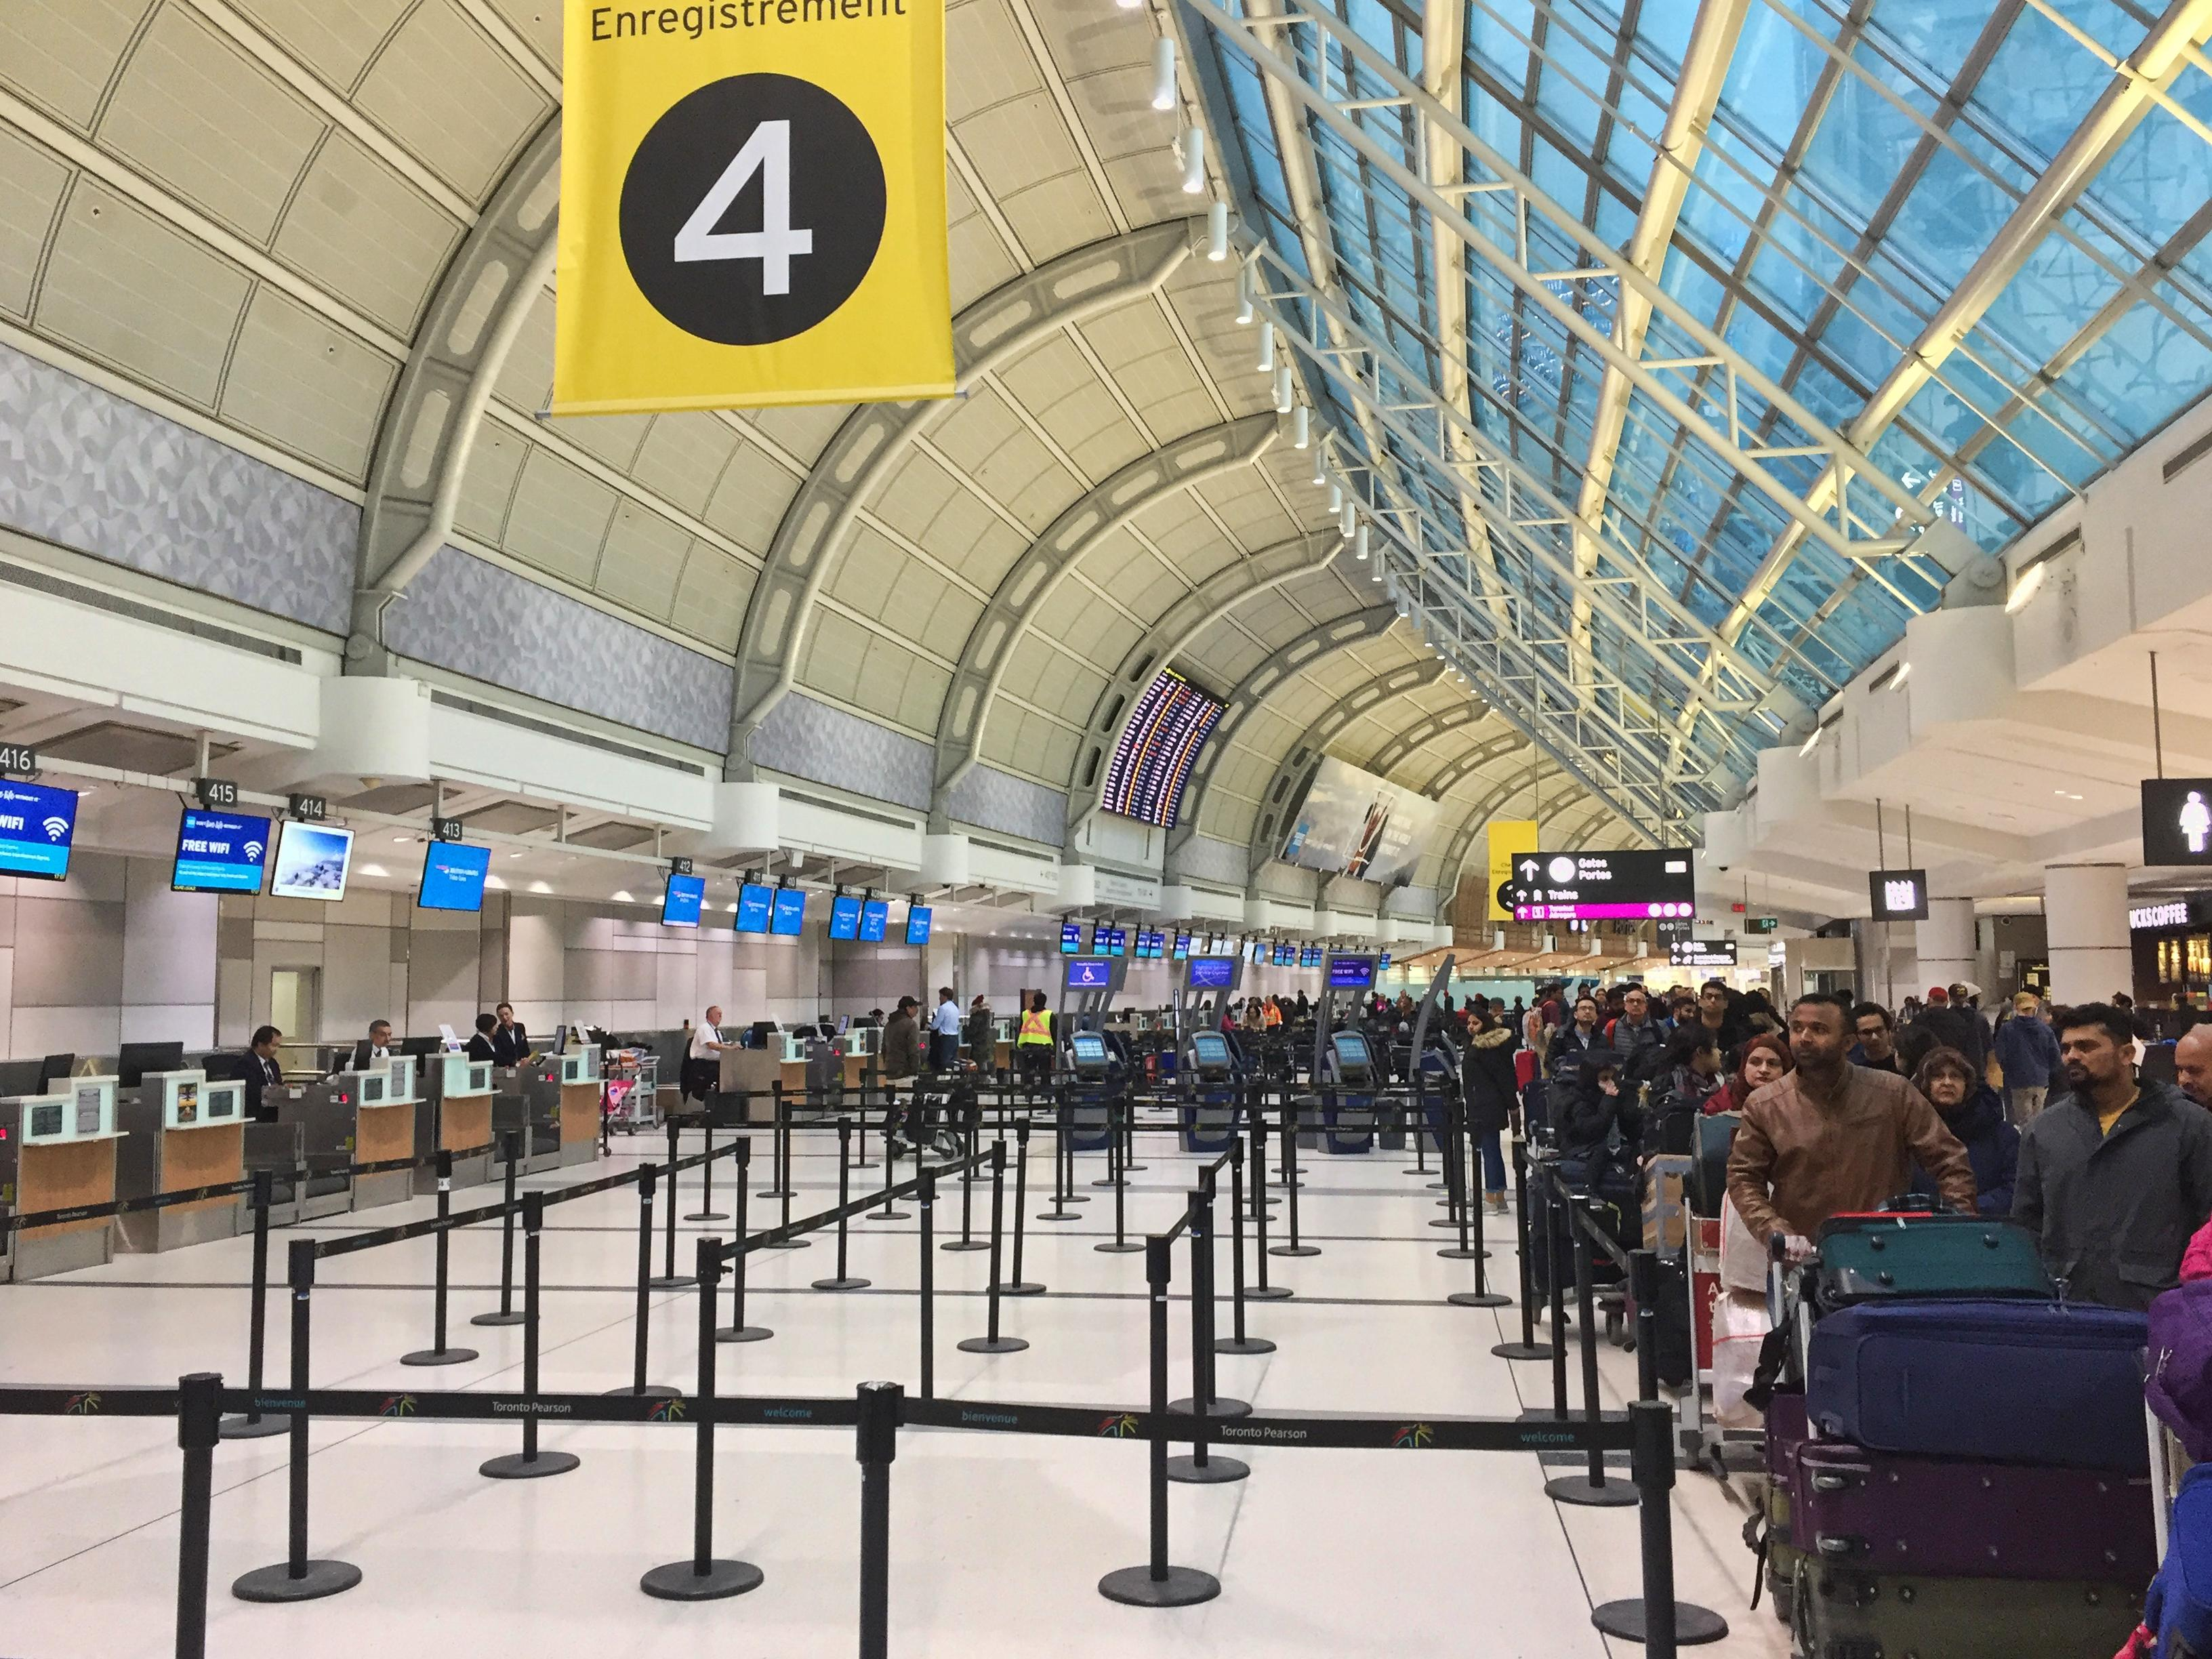 Transport Canada to limit international arrivals to specific airports